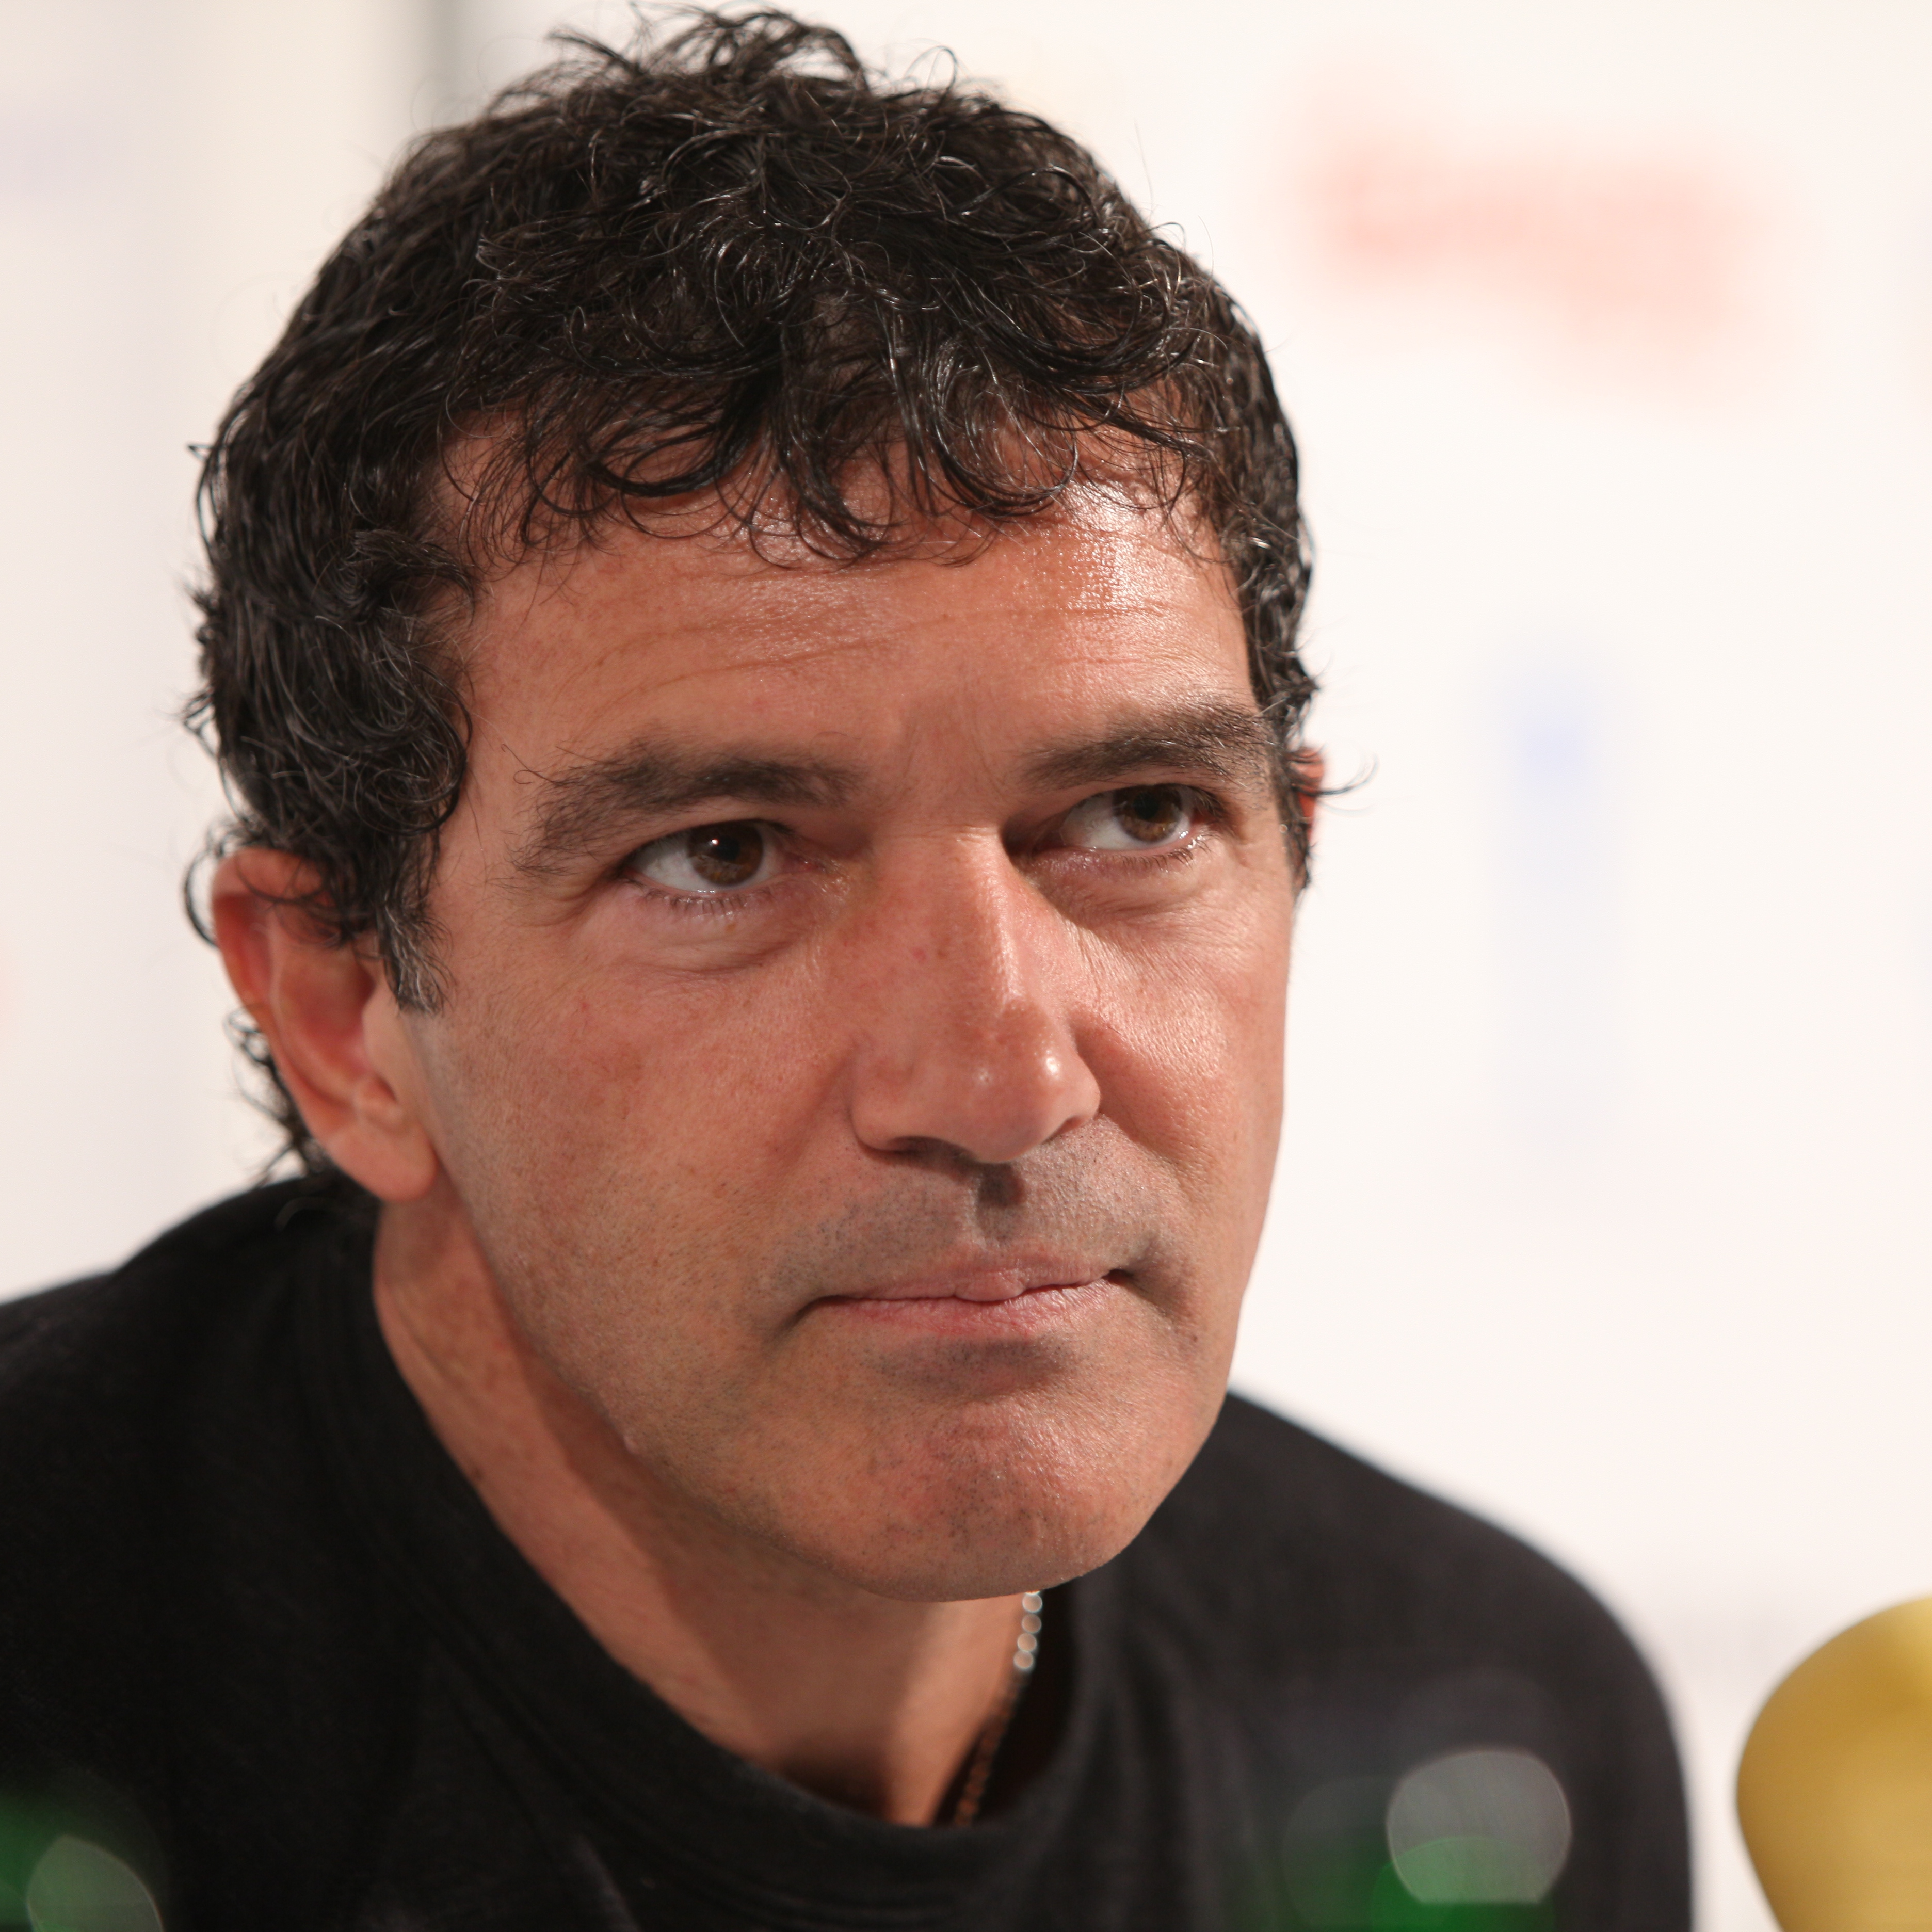 File:Antonio Banderas KVIFF.jpg - Wikipedia, the free encyclopedia Antonio Banderas